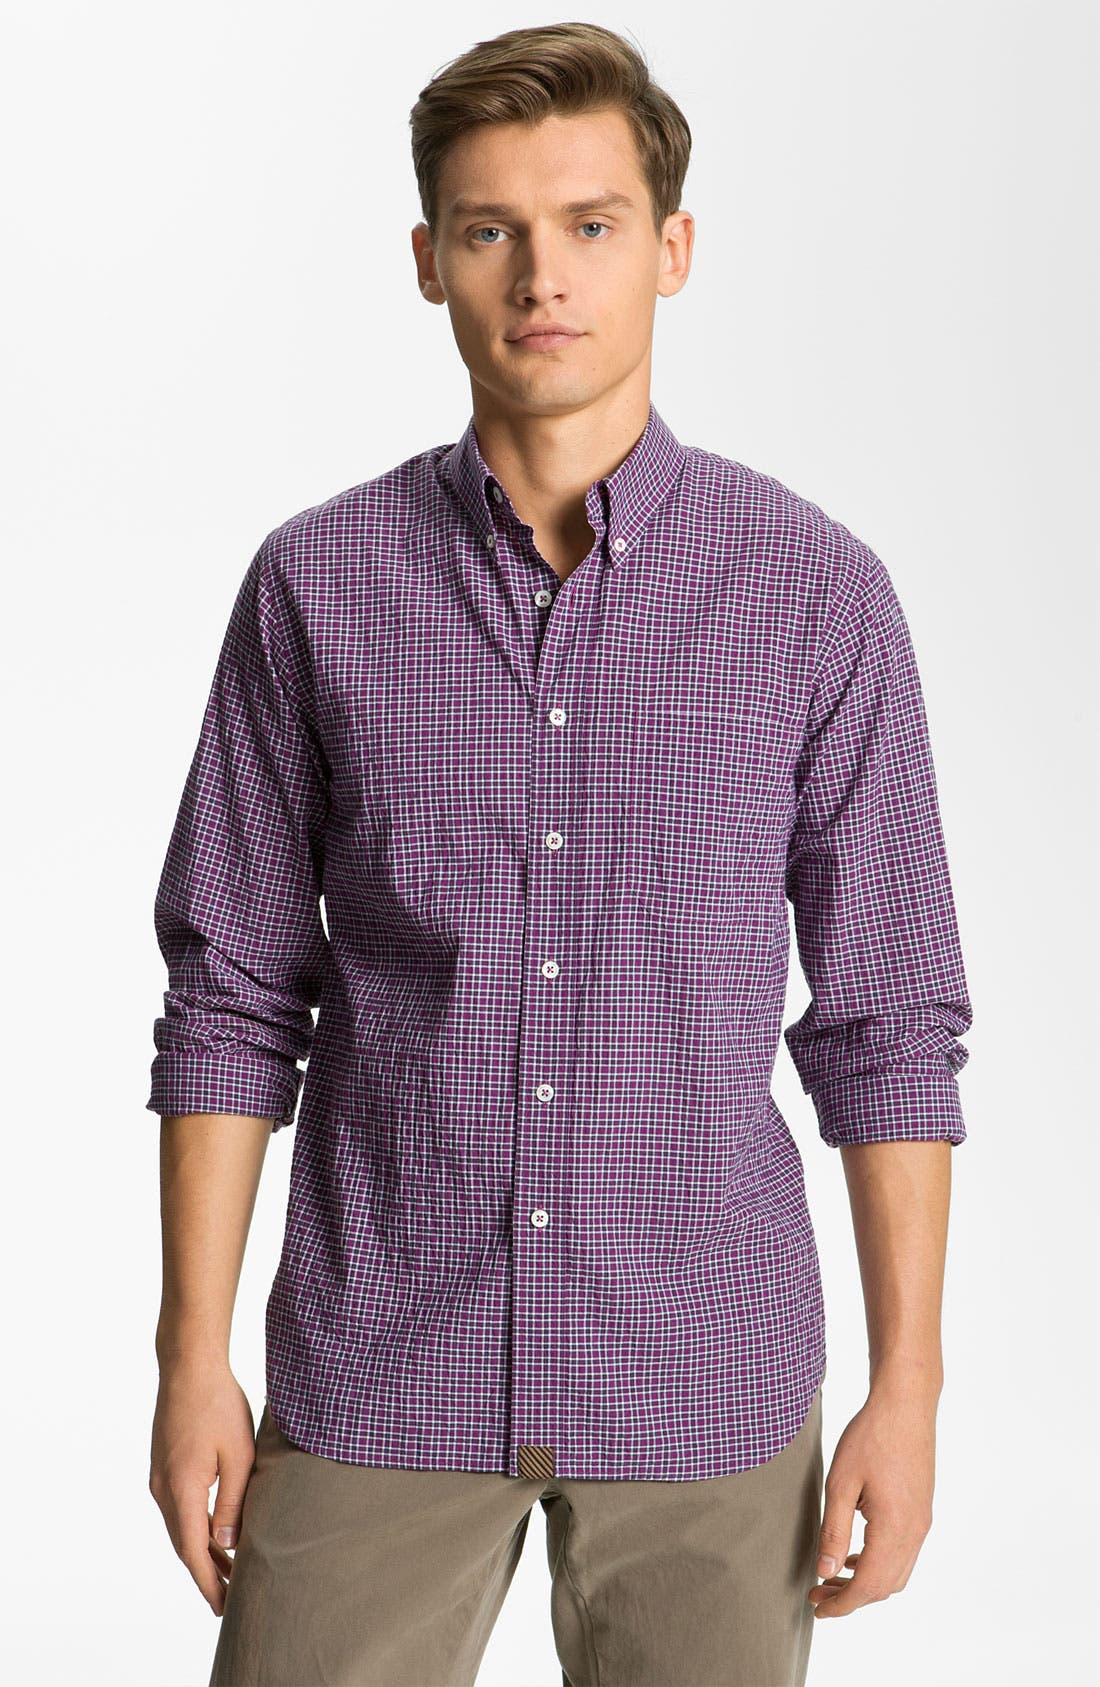 Alternate Image 1 Selected - Billy Reid 'Tuscumbia' Plaid Woven Shirt